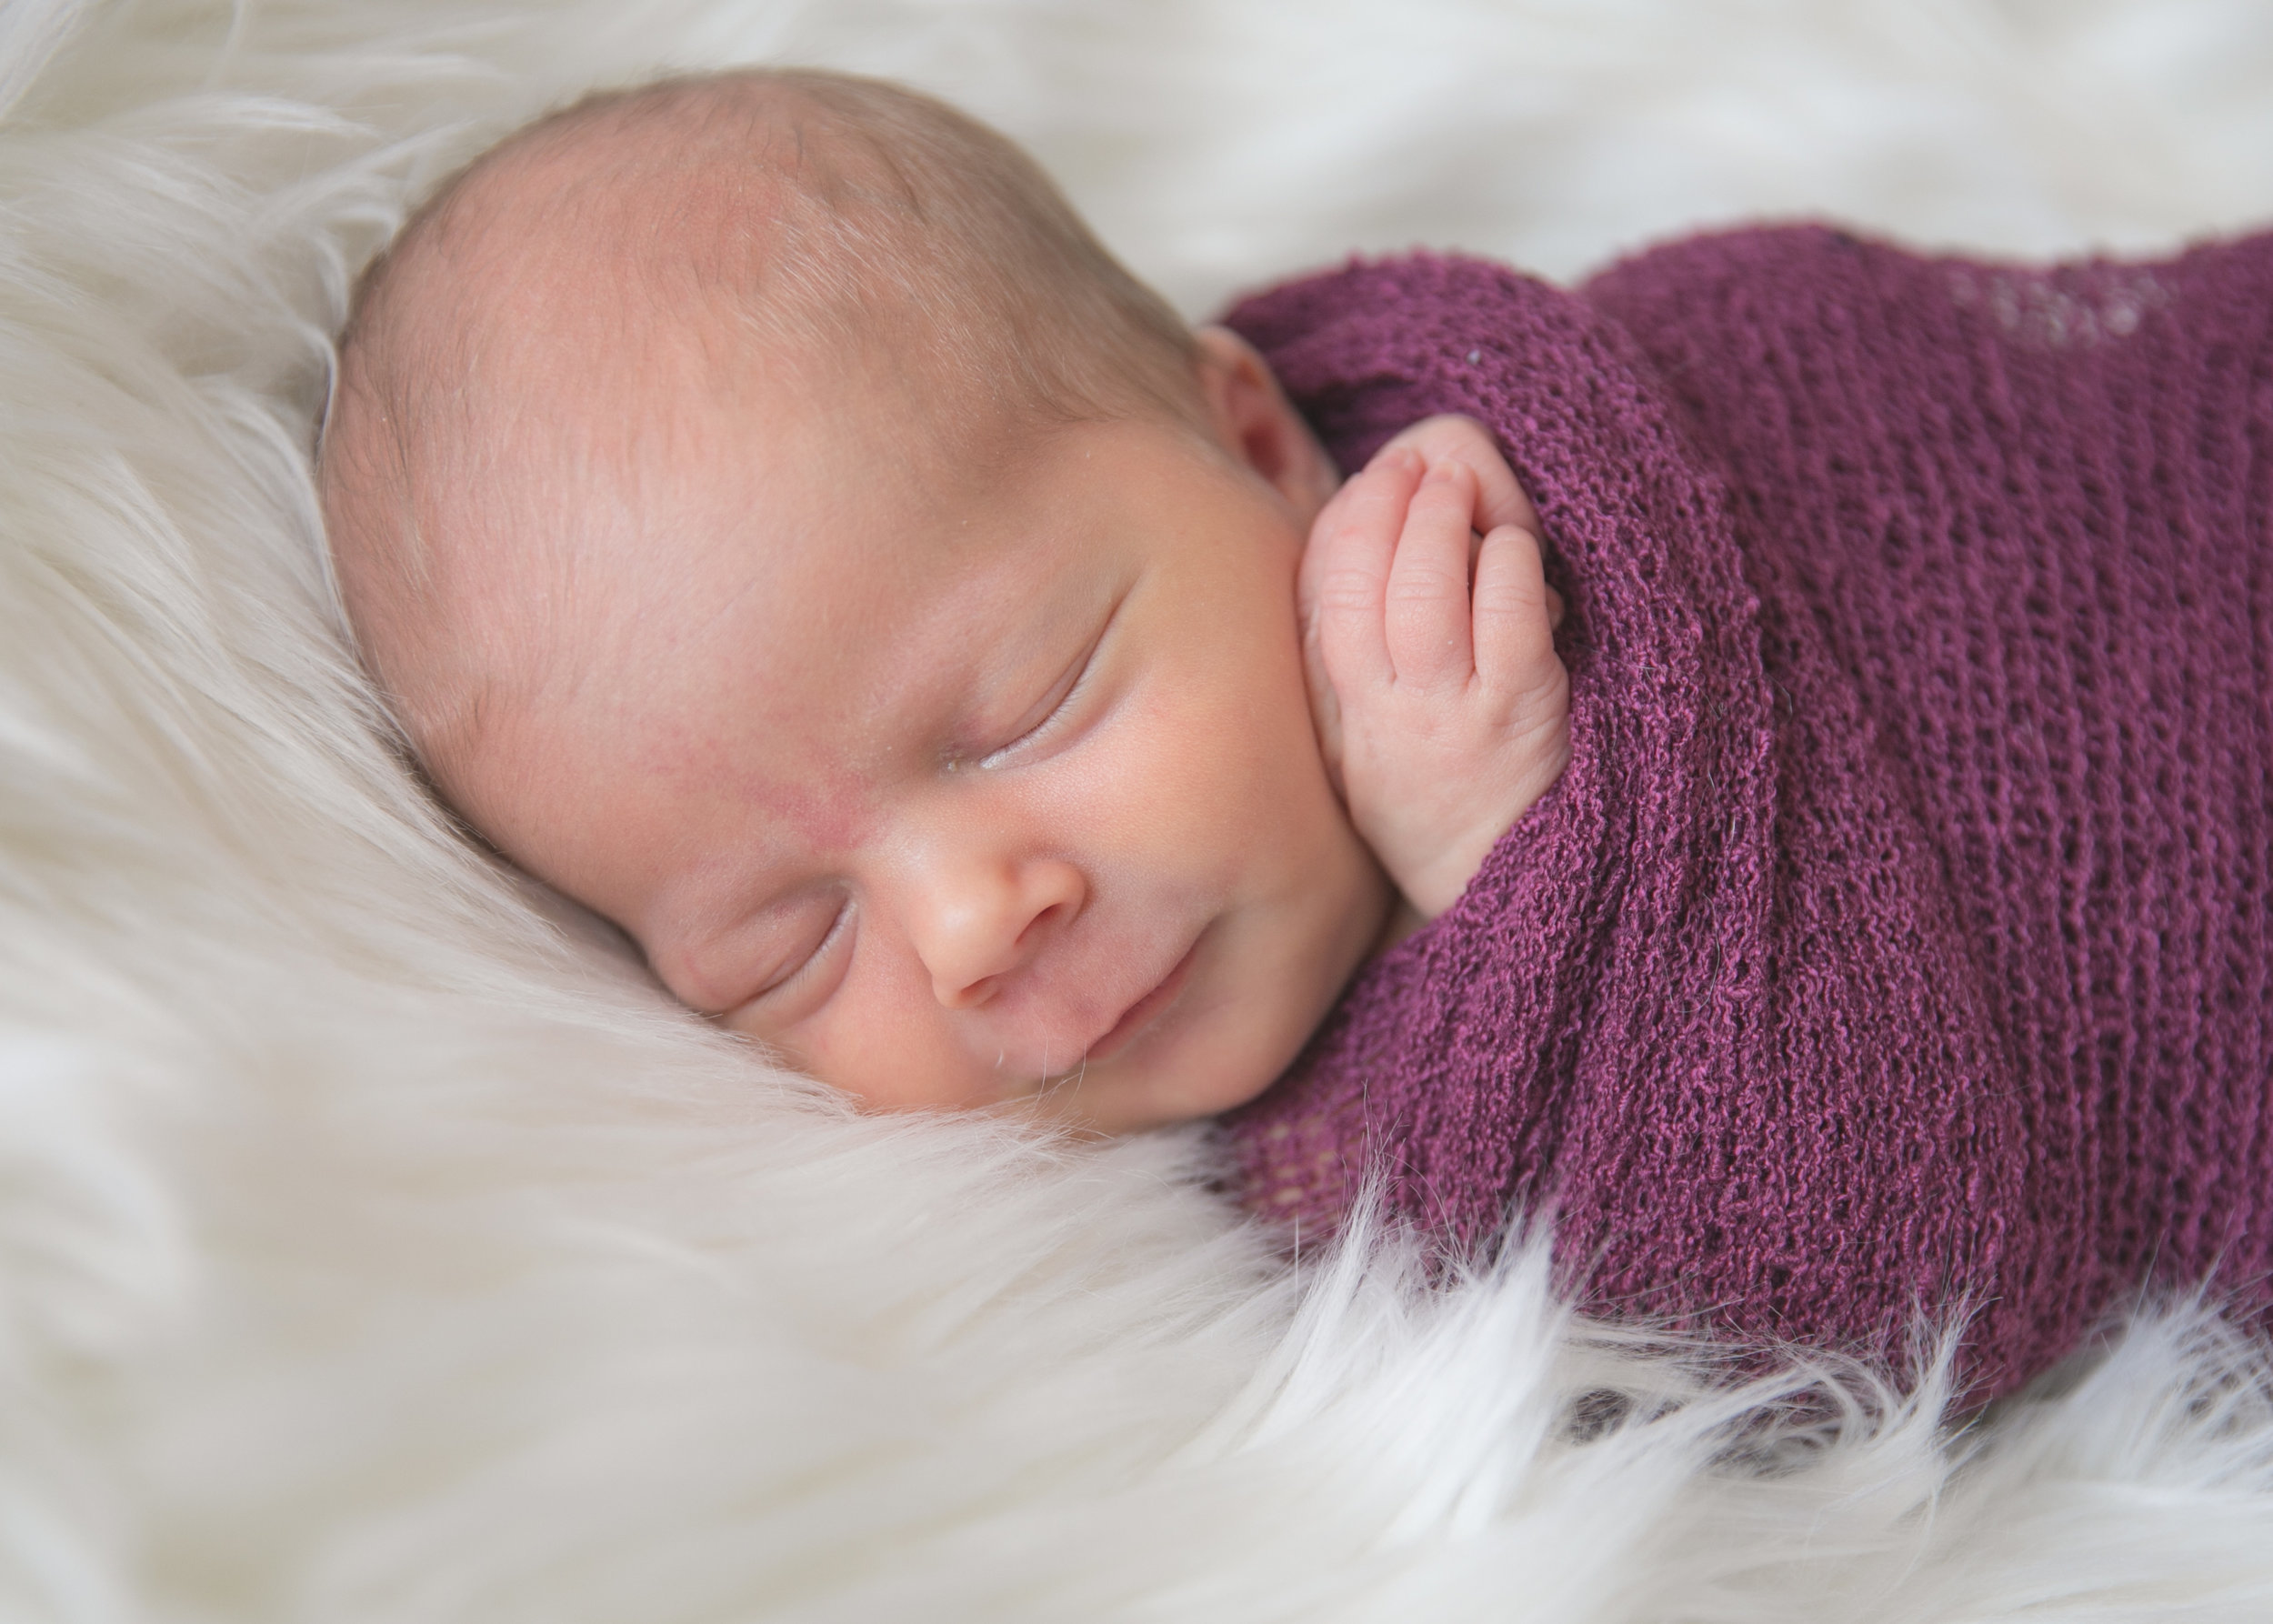 CrystalJessupPhotographynewborn (14 of 57).jpg